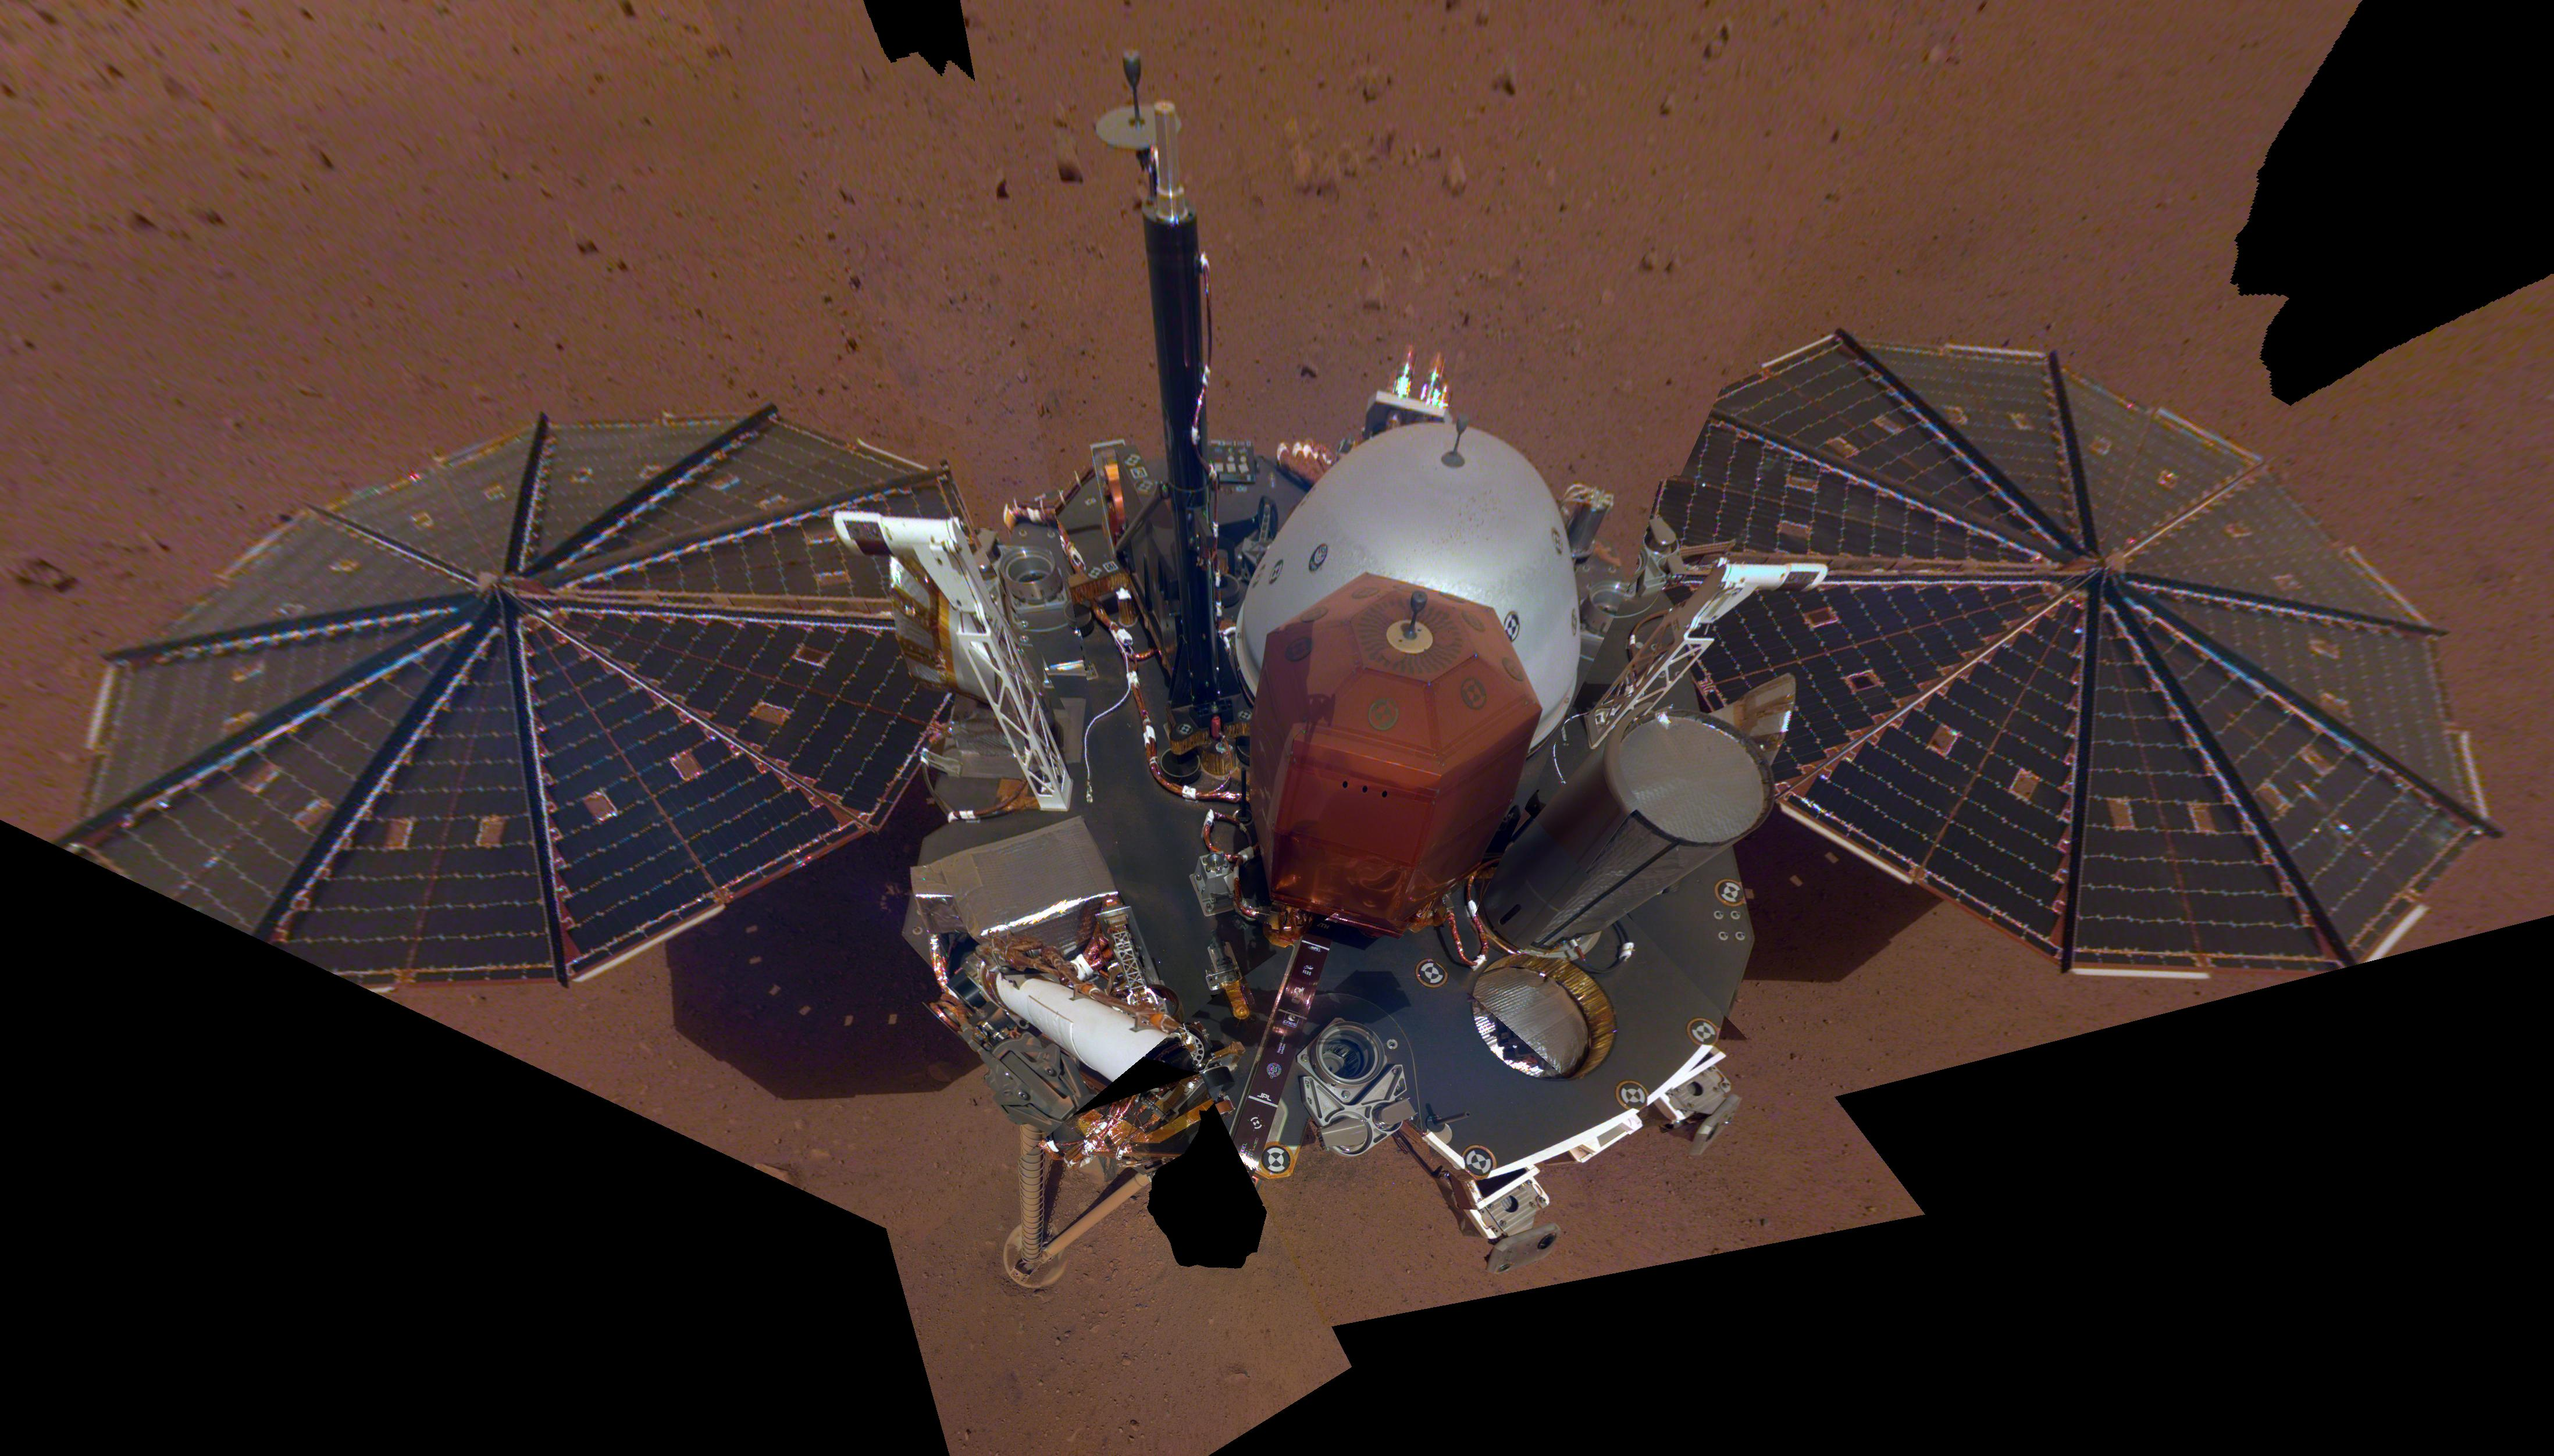 This is NASA InSights first selfie on Mars. It displays the landers solar panels and deck. On top of the deck are its science instruments, weather sensor booms and UHF antenna.